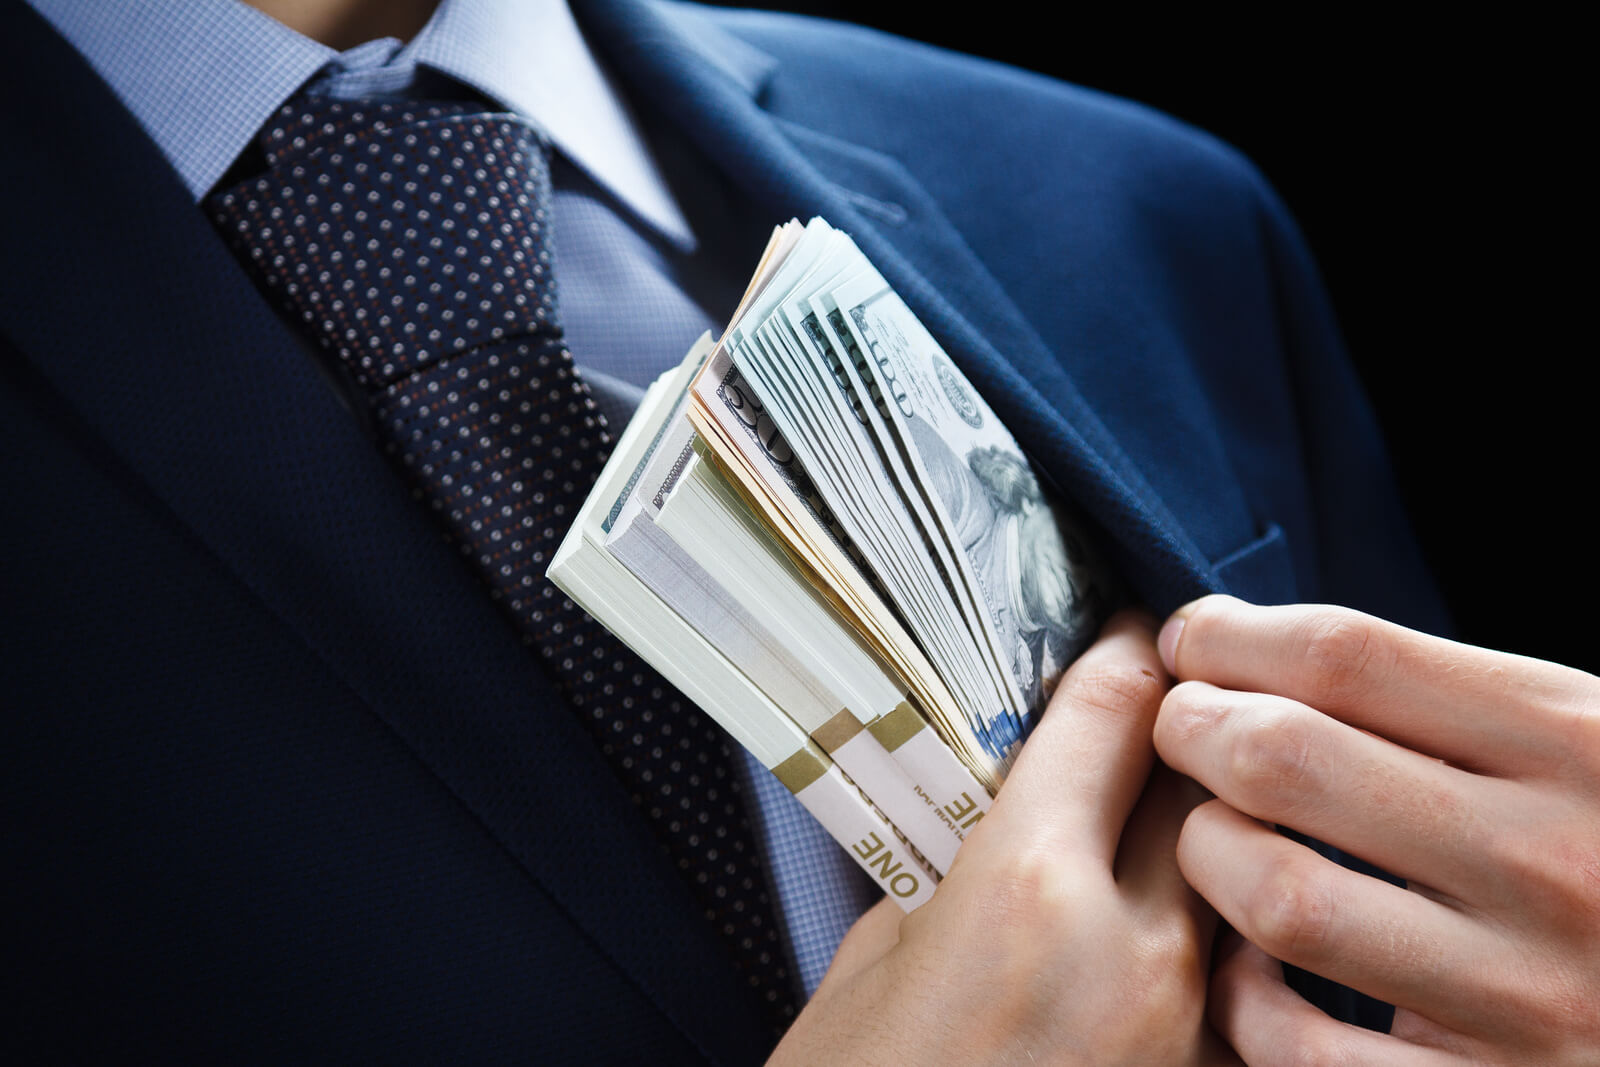 Occupational Fraud - Don't Let It Derail Your Business